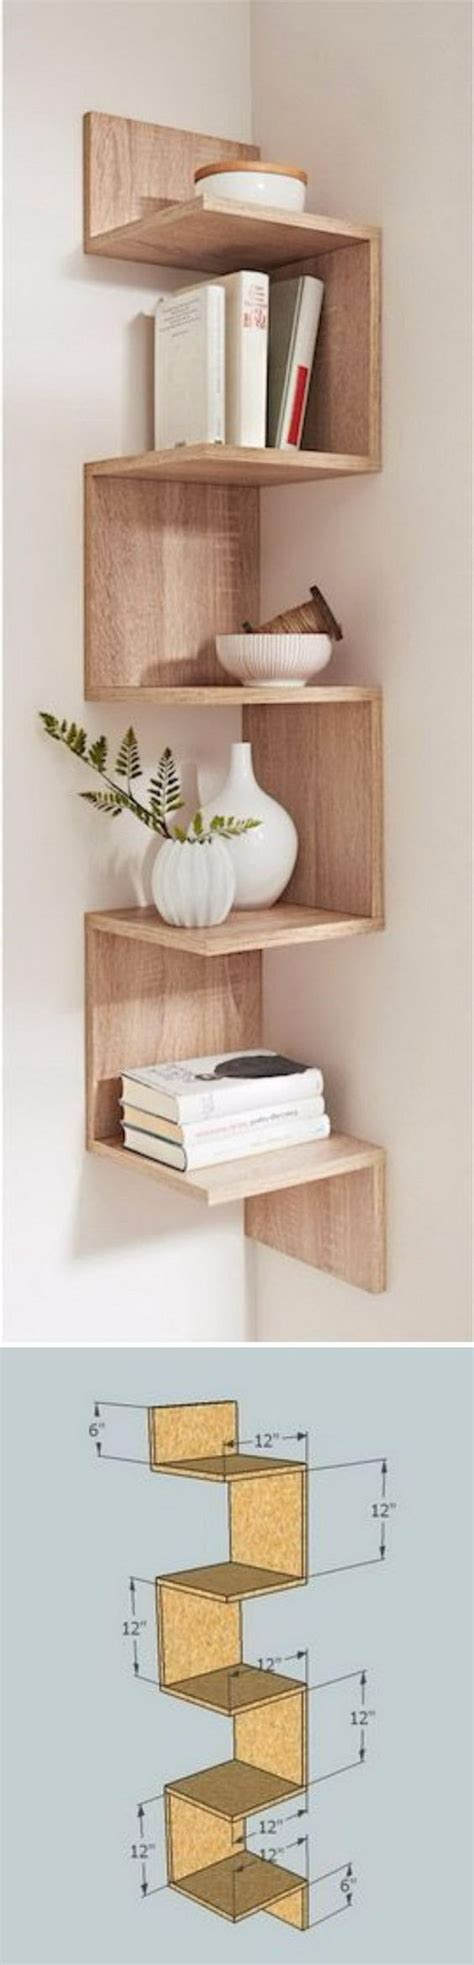 wall bookshelves ideas 25 best ideas about bookshelves on bookshelves box shelves and wall